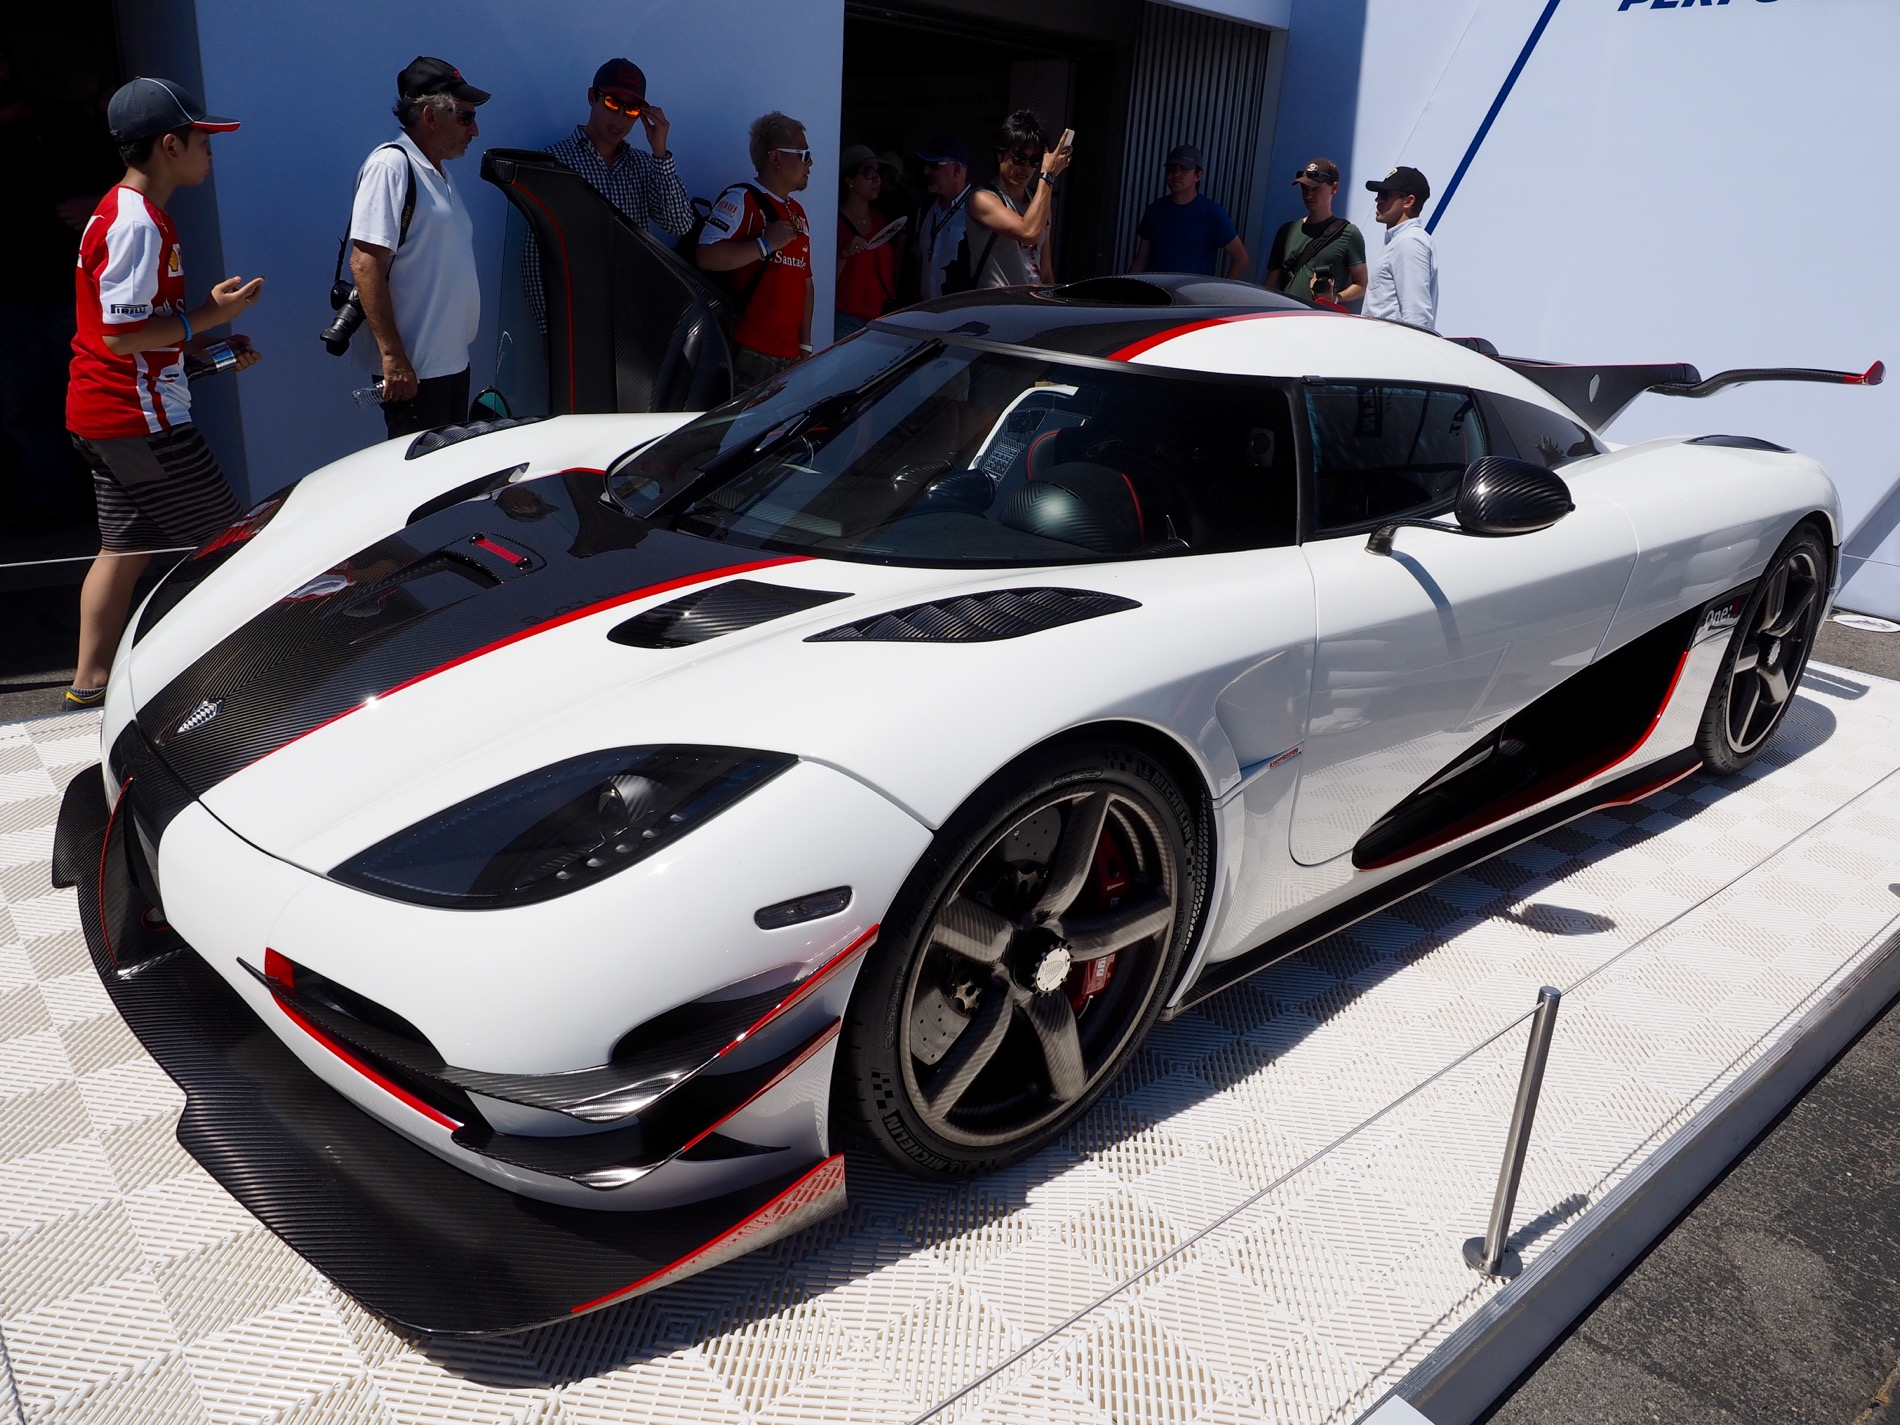 2015 pebble beach koenigsegg one 1 courtesy of michelin. Black Bedroom Furniture Sets. Home Design Ideas